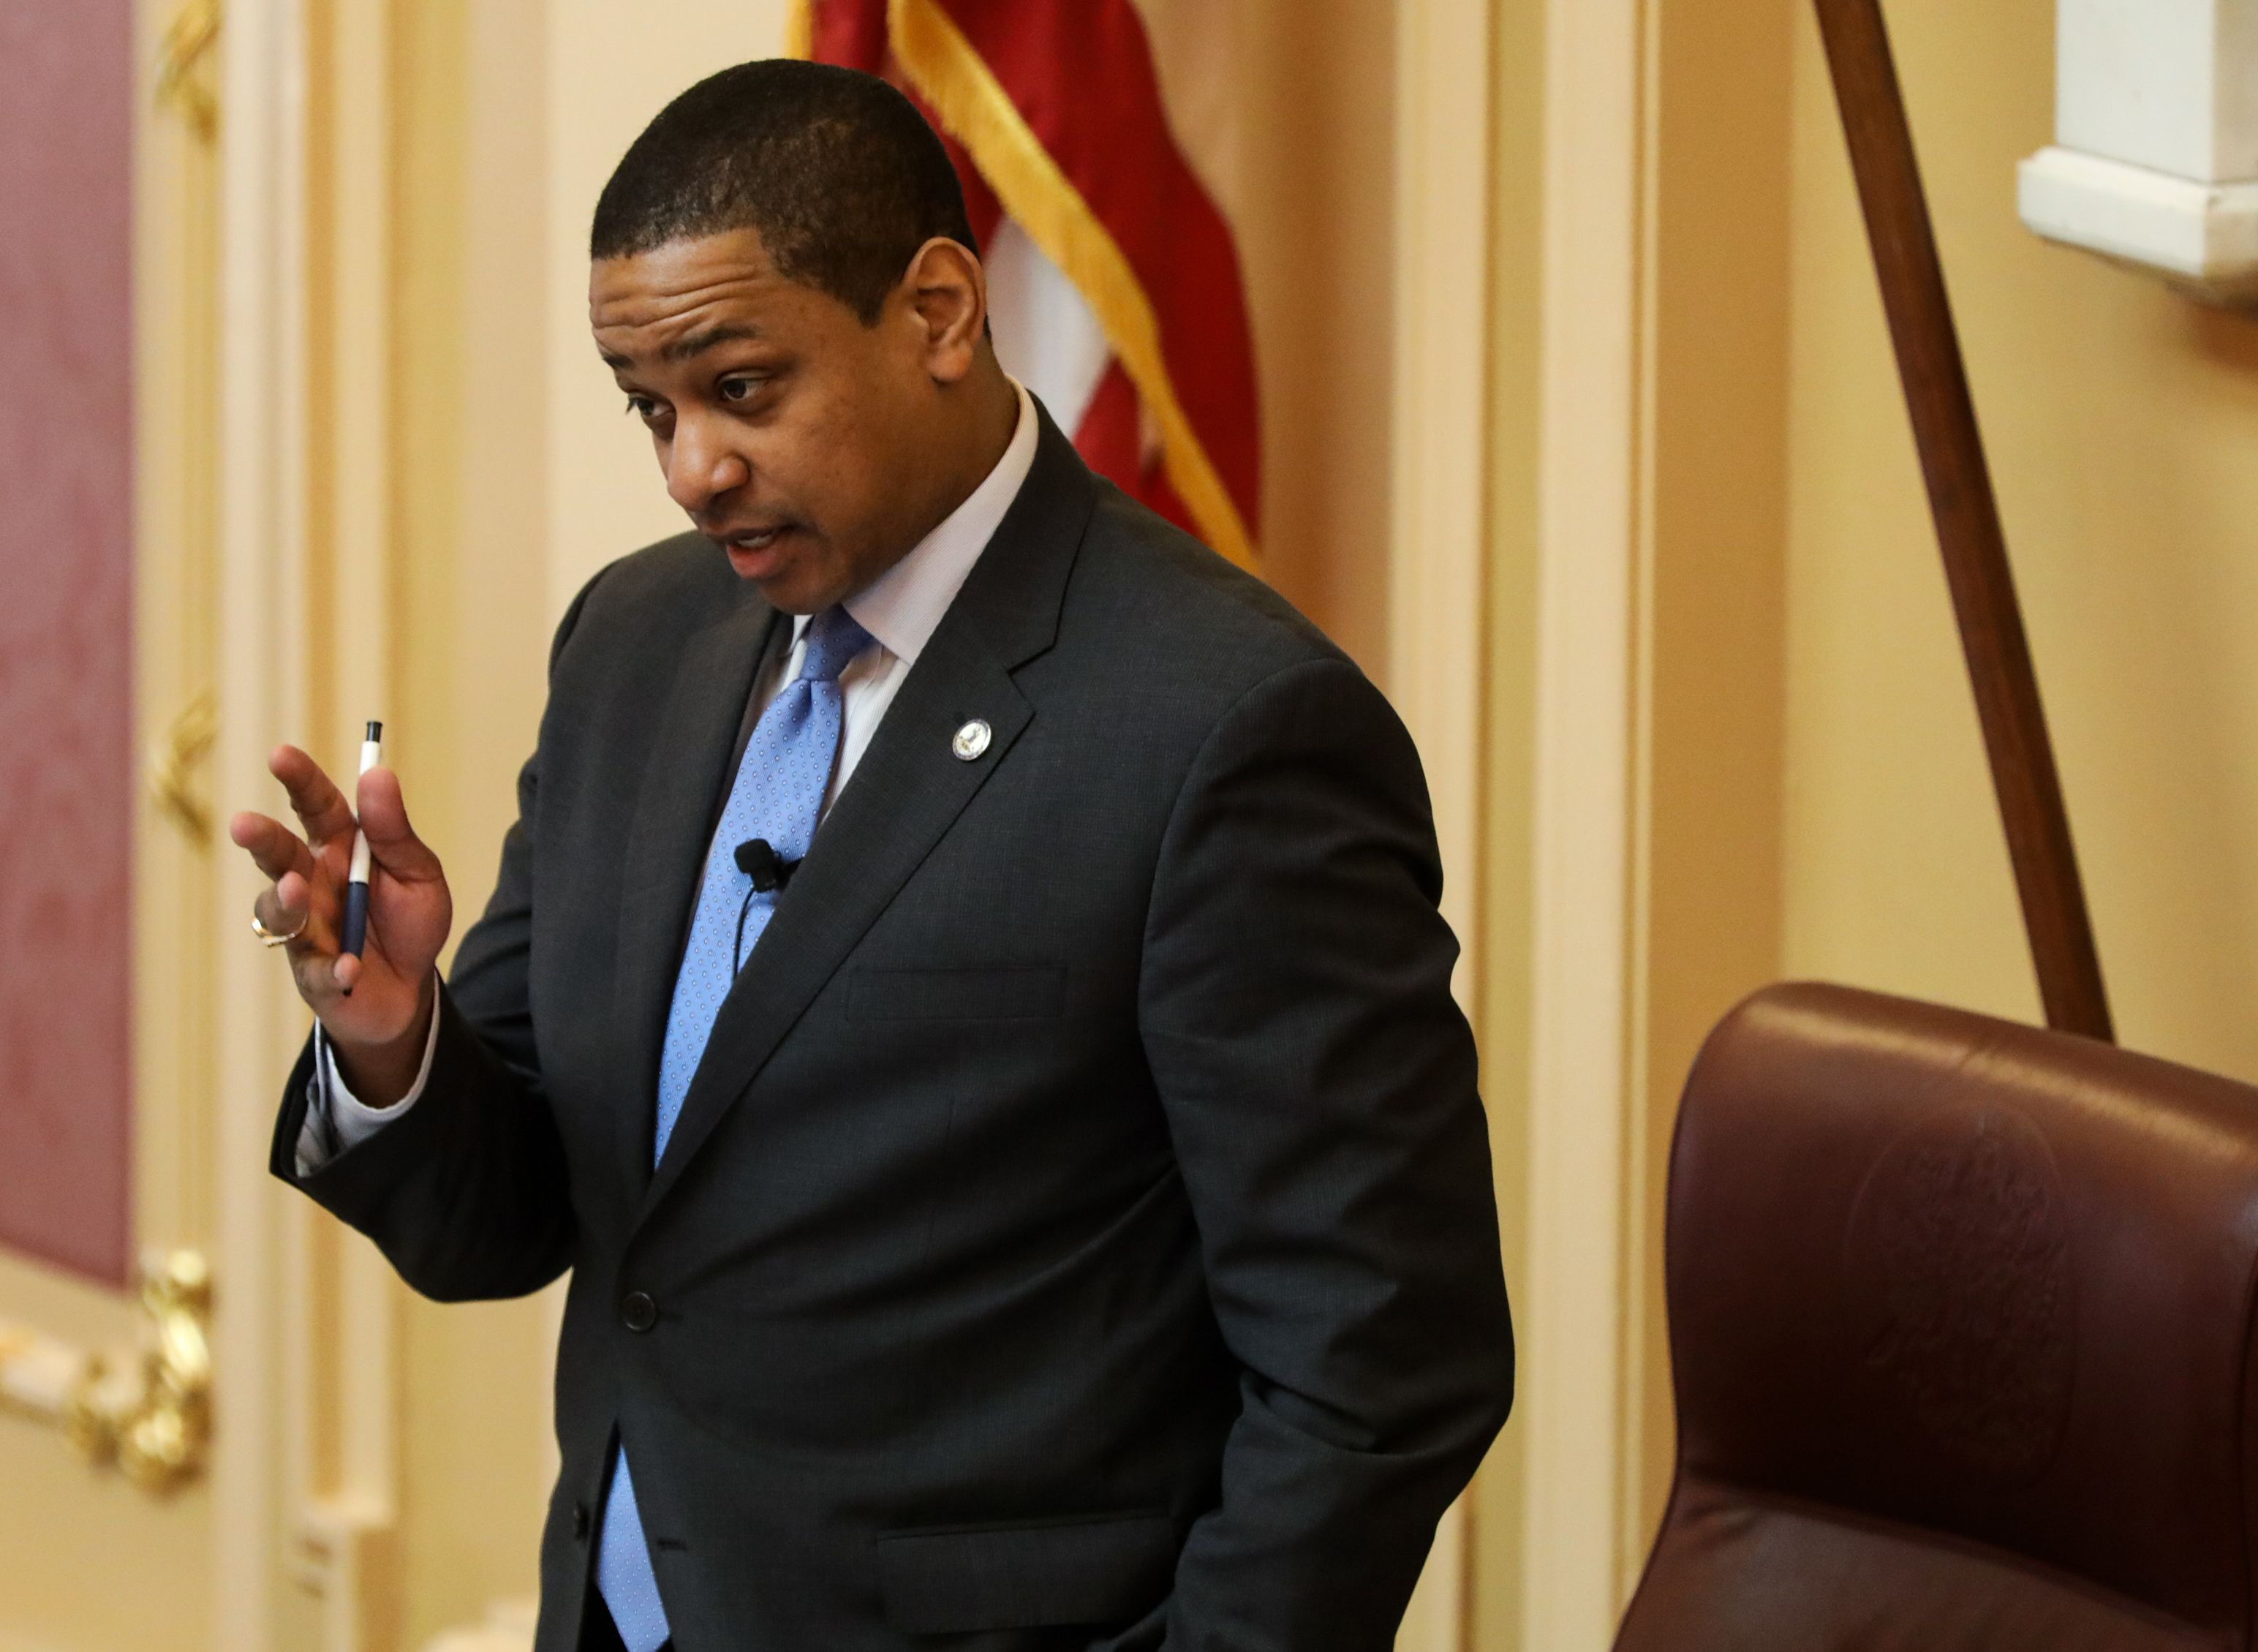 Virginia Lieutenant Governor Justin Fairfax presides over a session of the state senate inside the capital building in dowtown Richmond, on February 4, 2019. (LOGAN CYRUS/AFP/Getty Images)